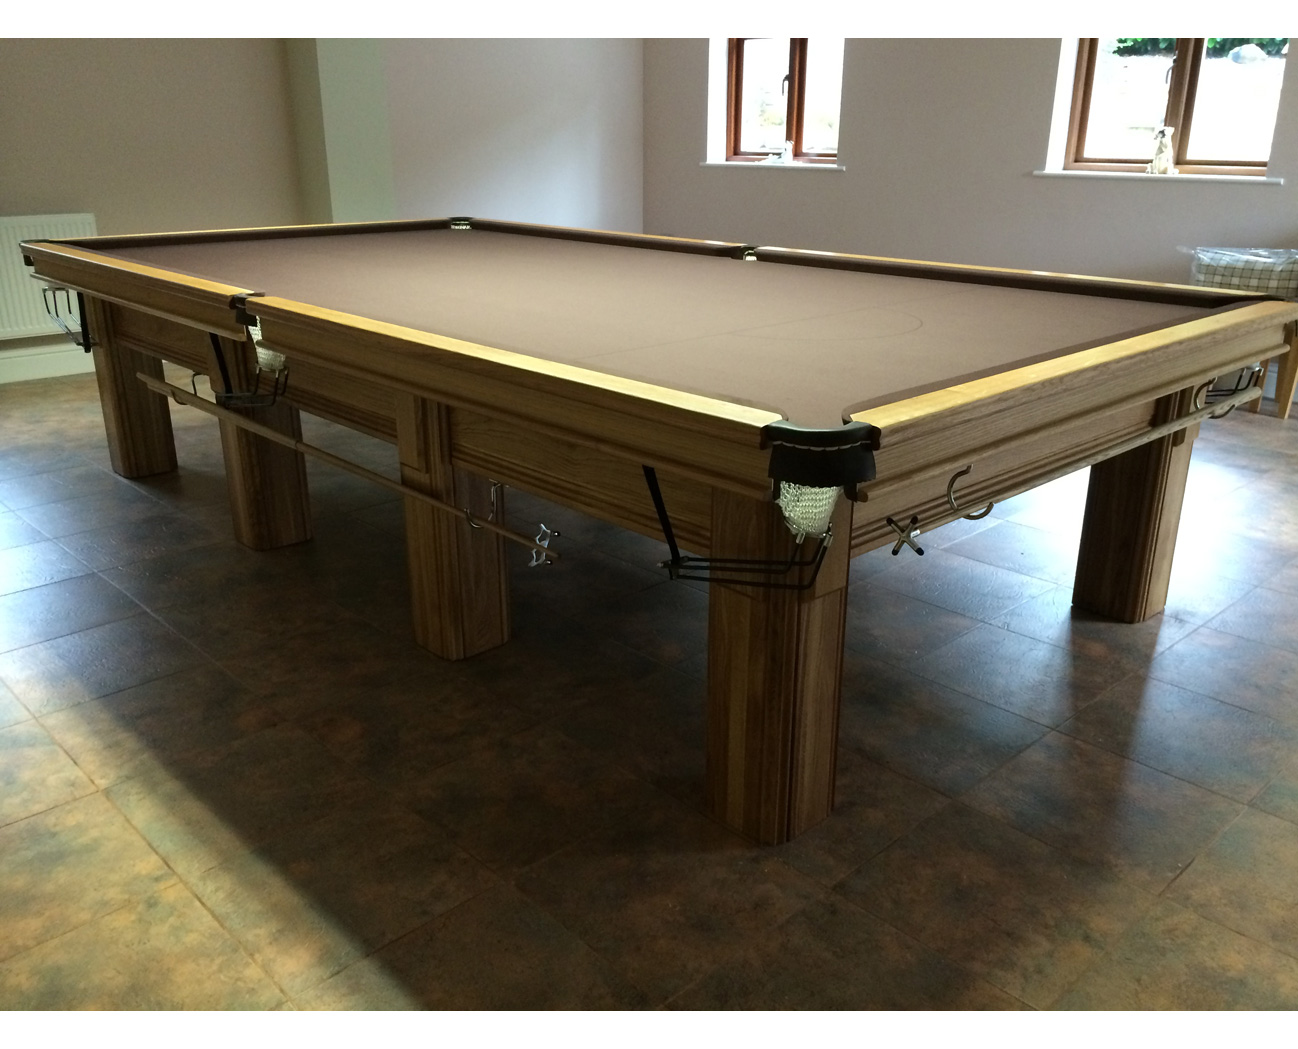 Connoisseur 12 X 6 Snooker Table Oak With Square Legs